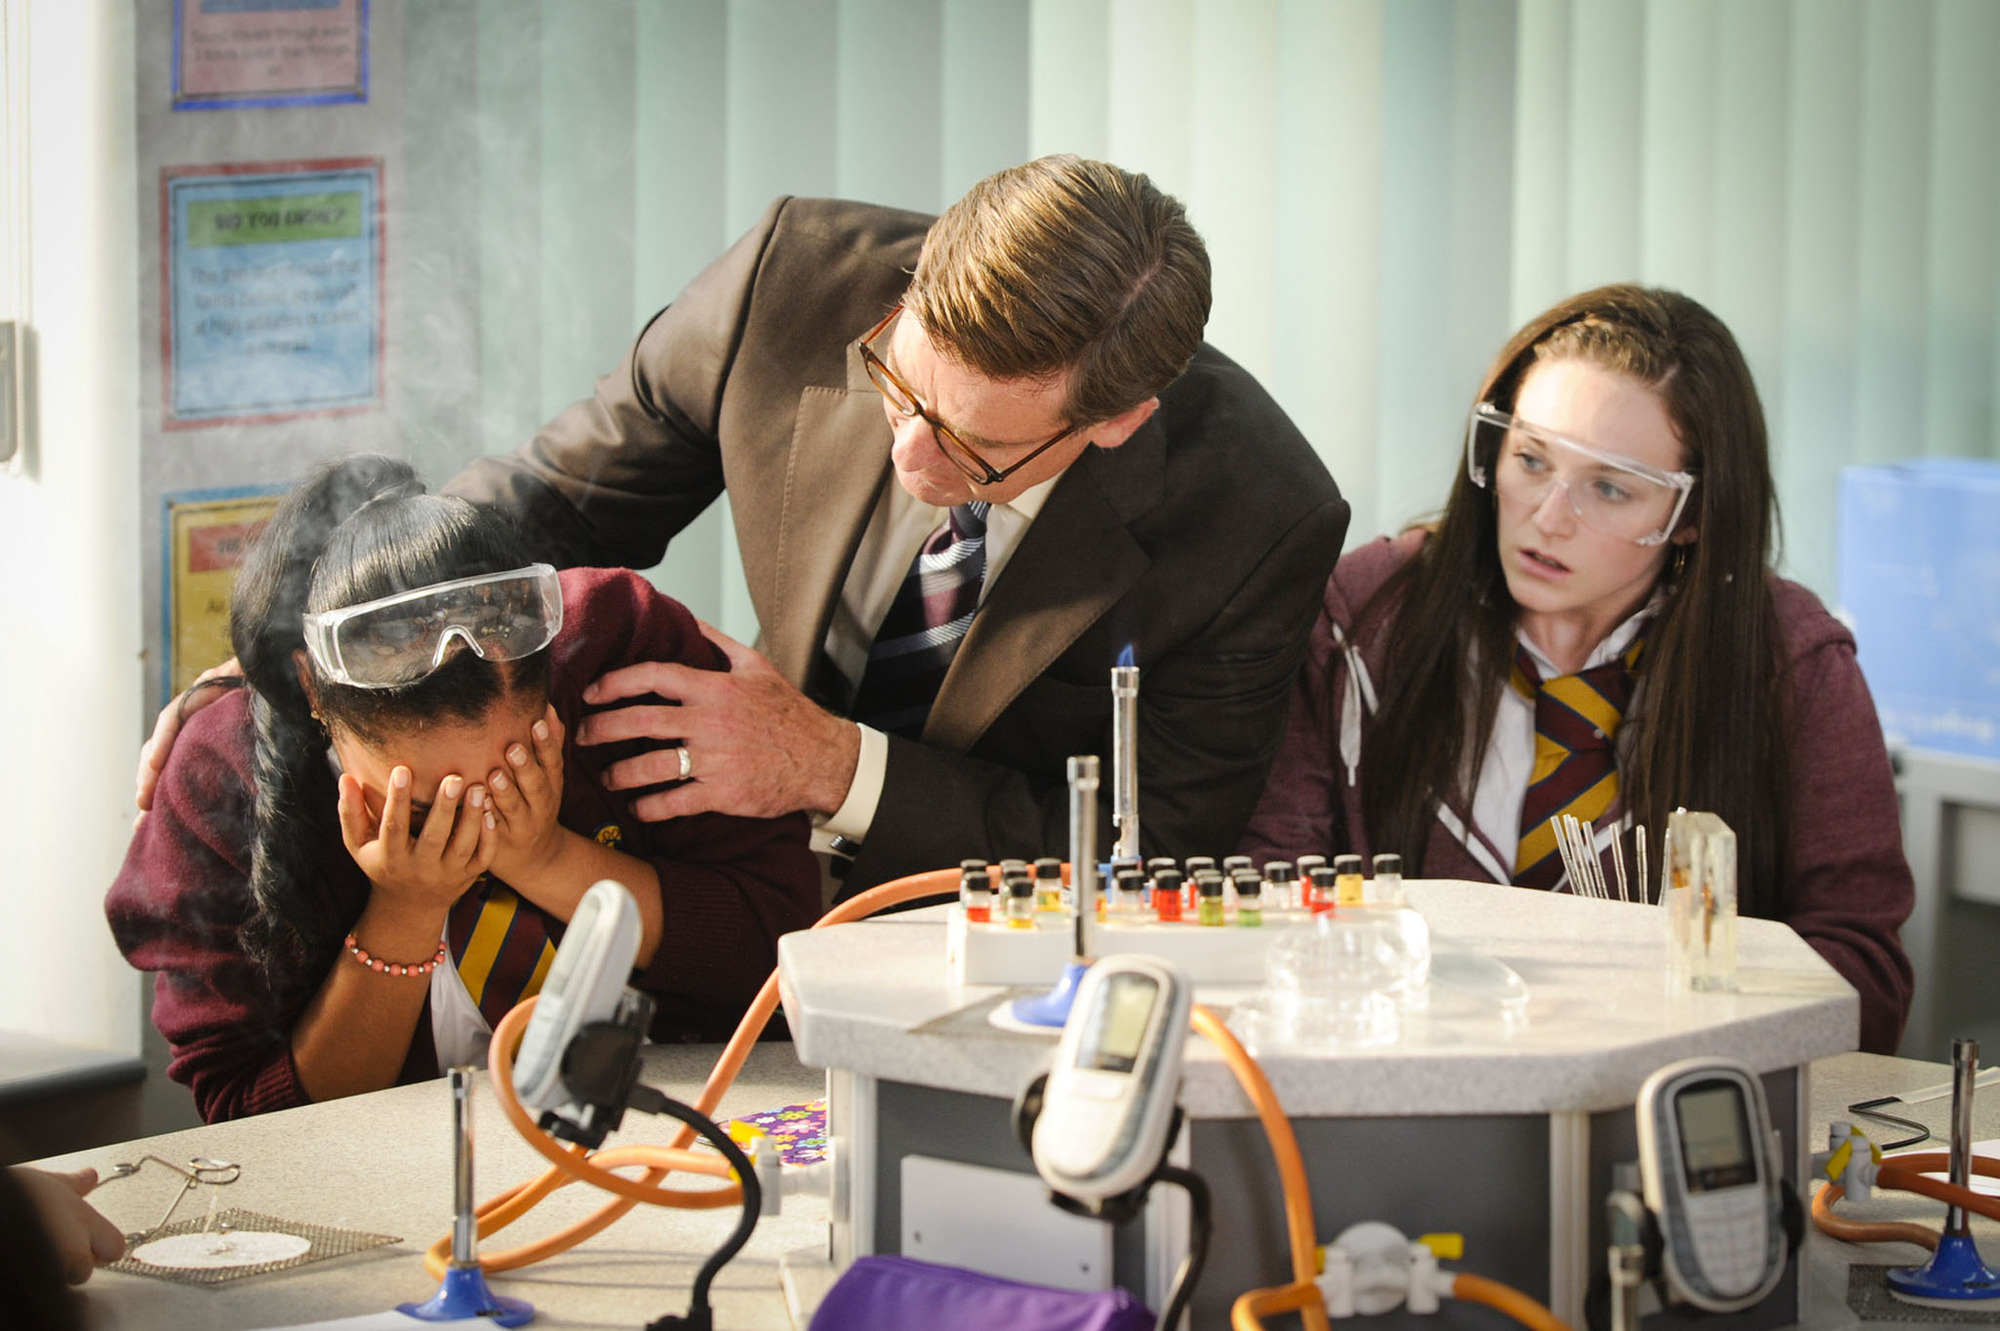 Waterloo Road final series continues: 11 teasers from epsiode 15